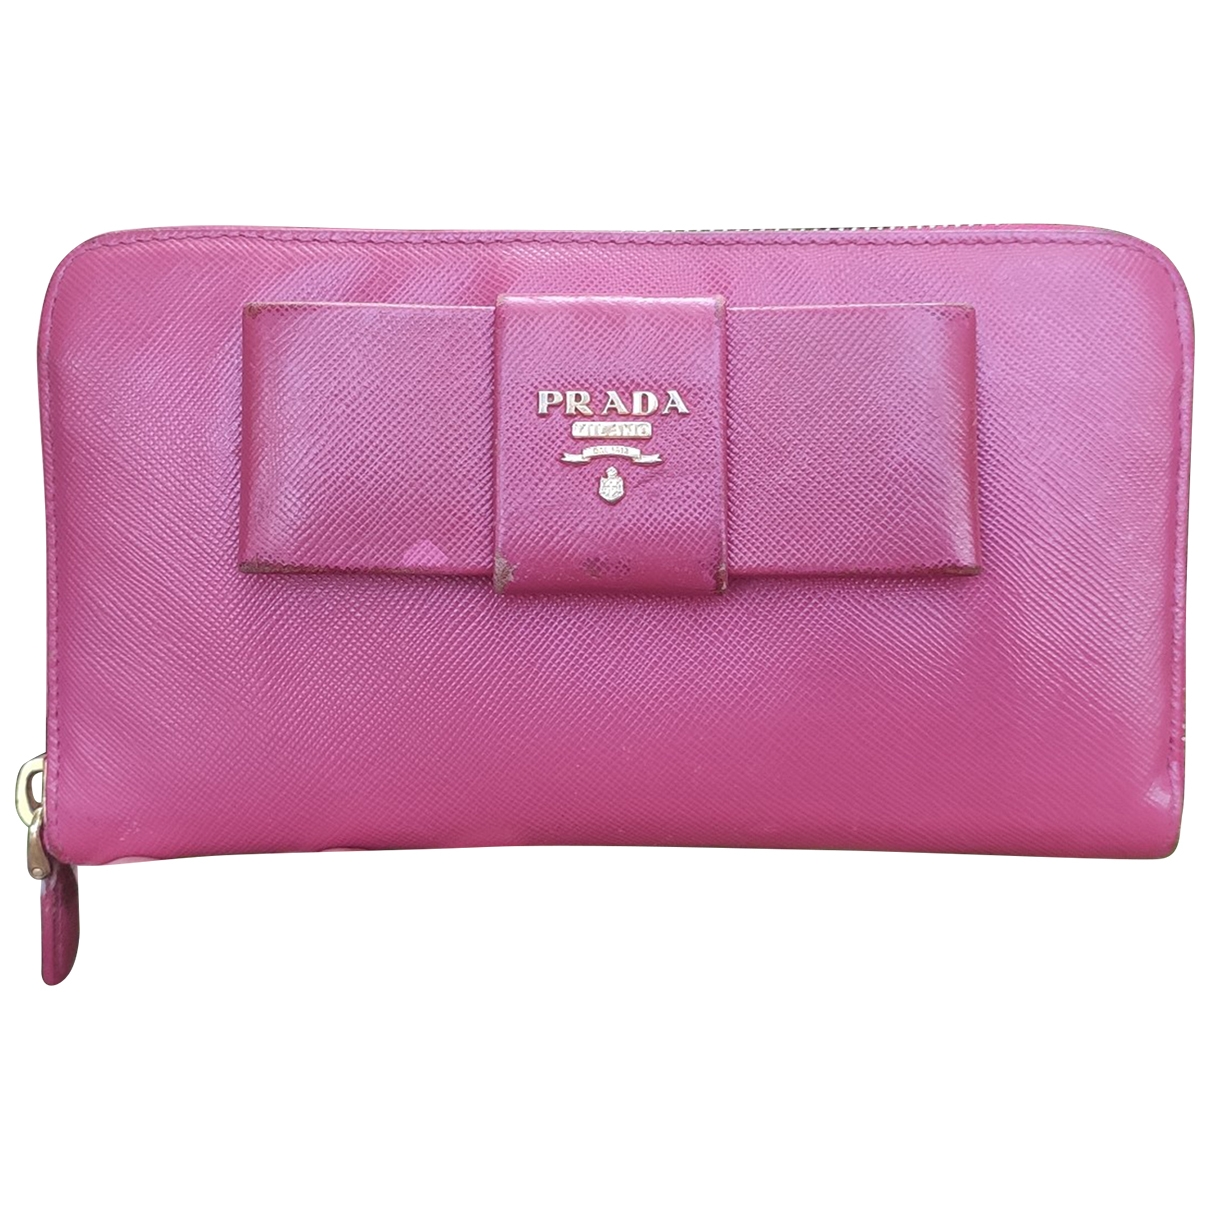 Prada \N Pink Leather wallet for Women \N